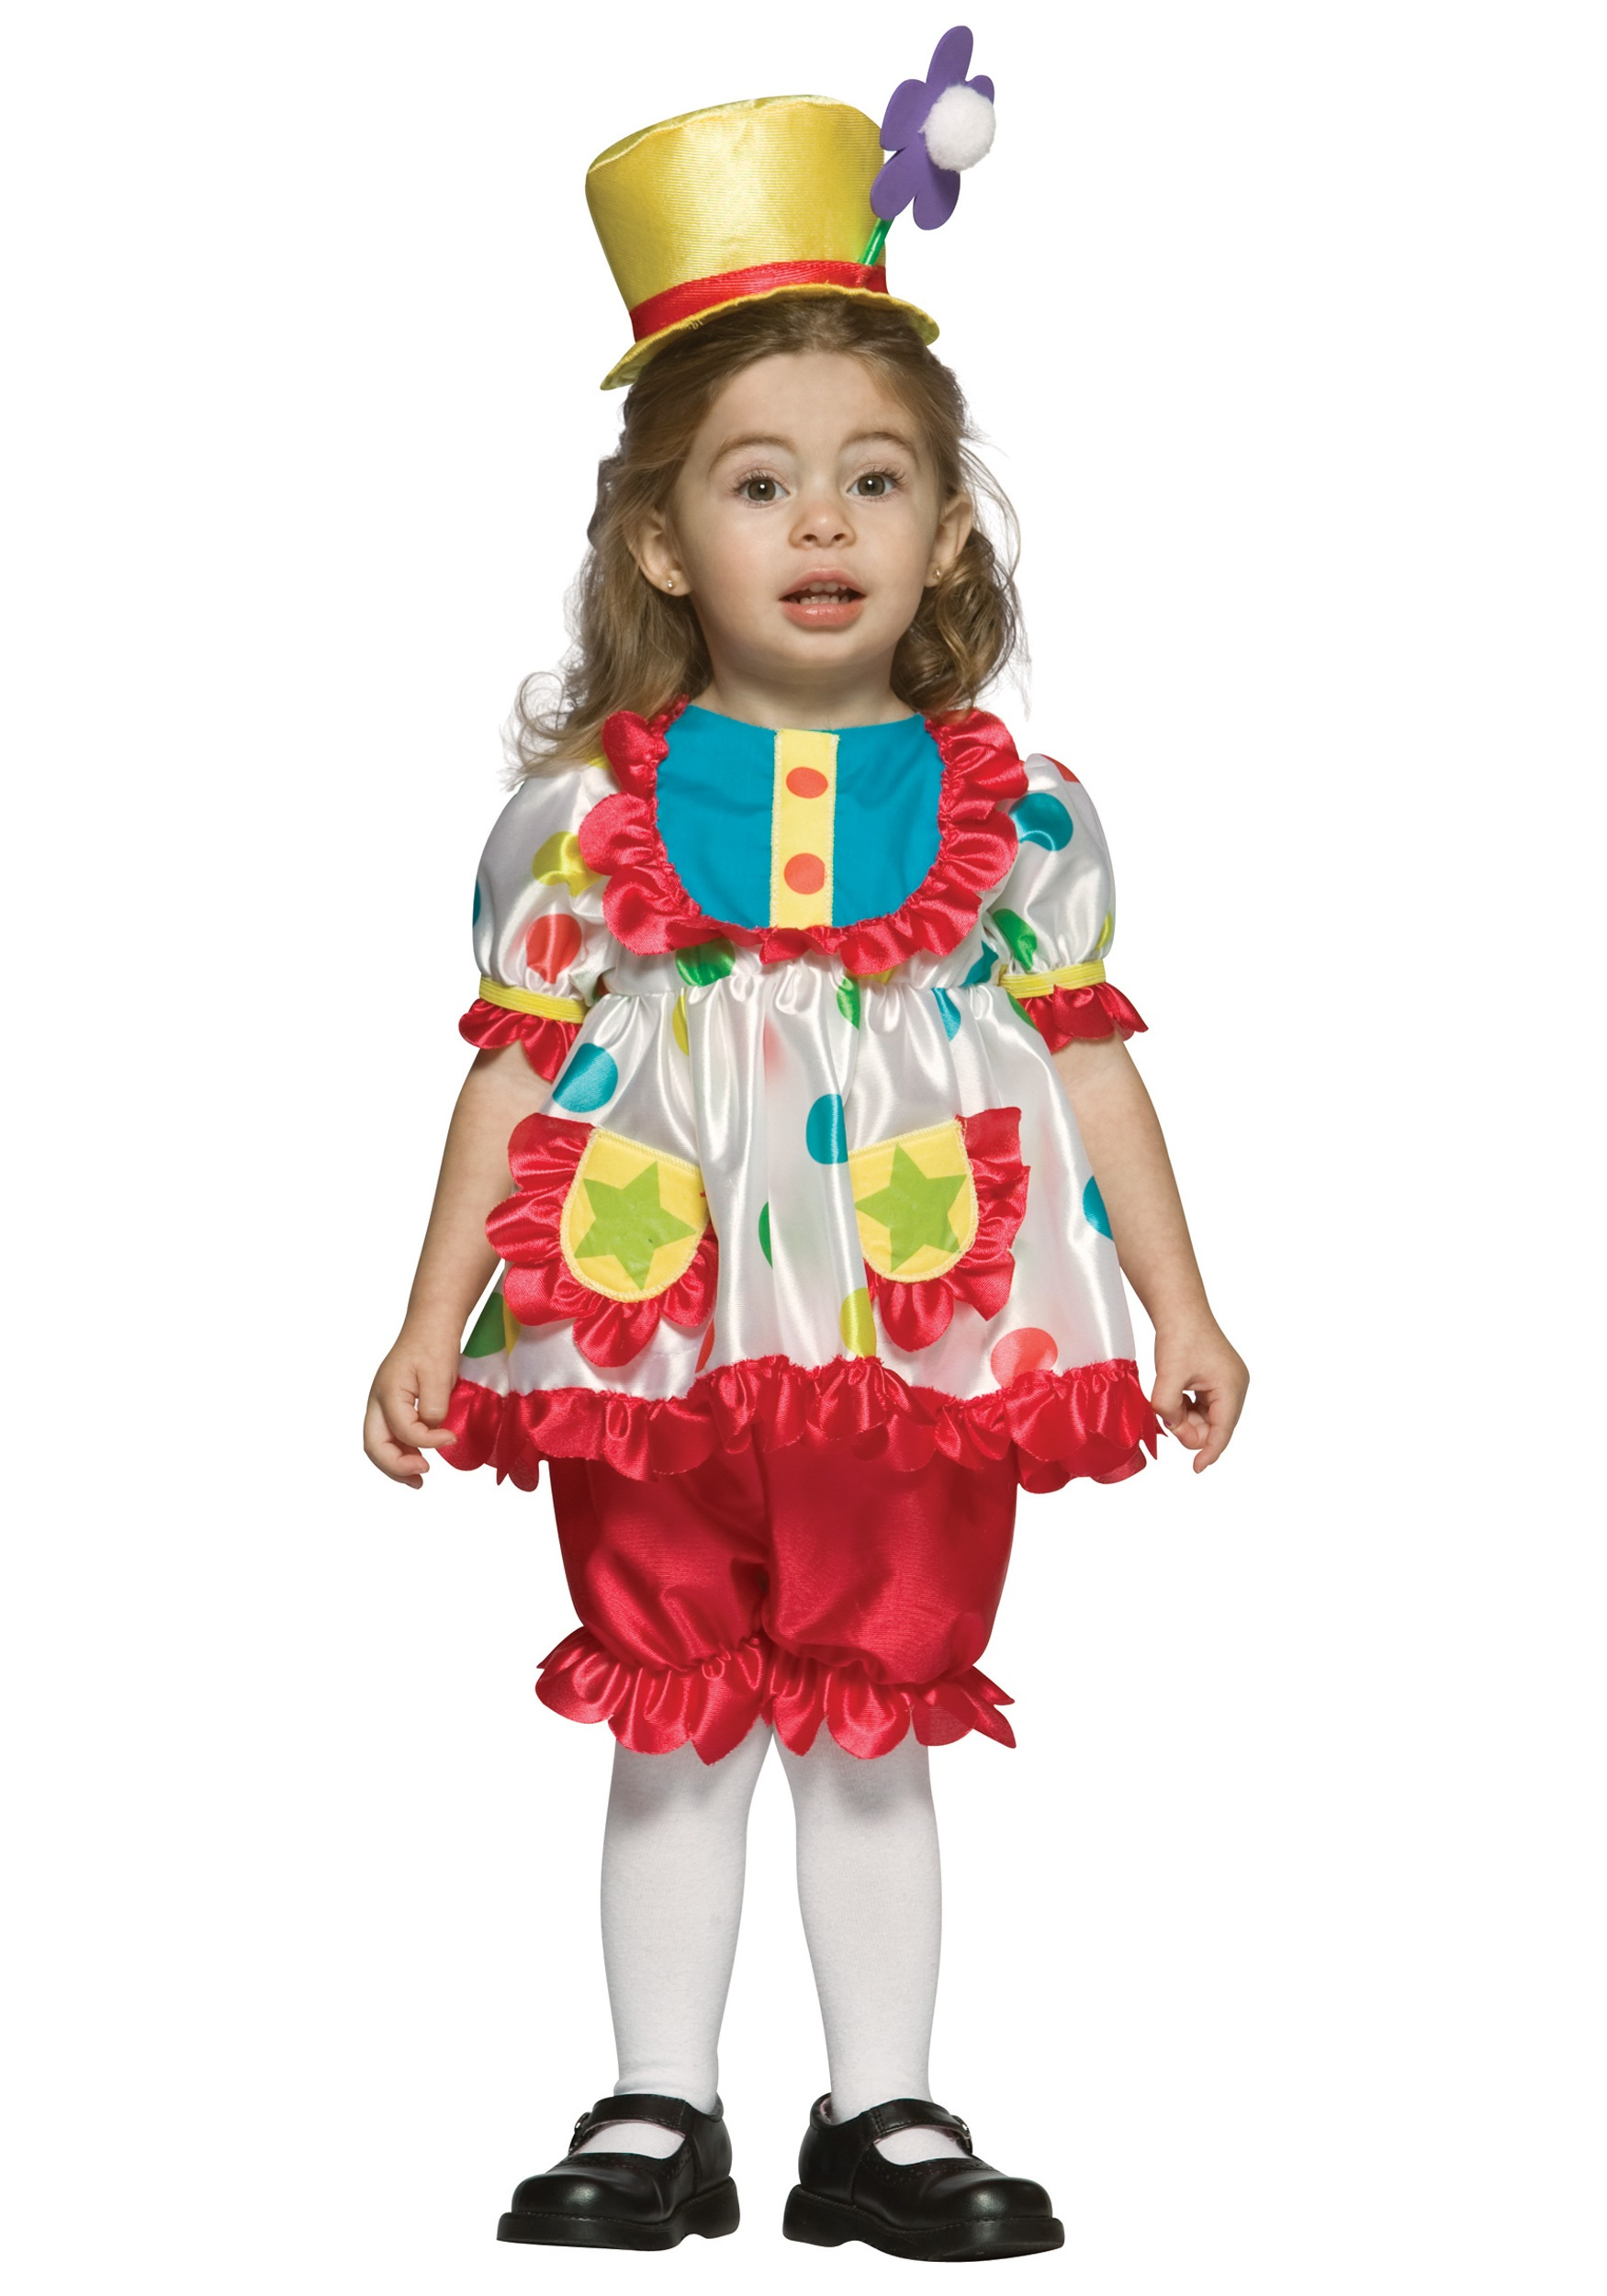 Toddler Girls Clown Costume  sc 1 st  Halloween Costumes & Toddler Girls Clown Costume - Halloween Costumes